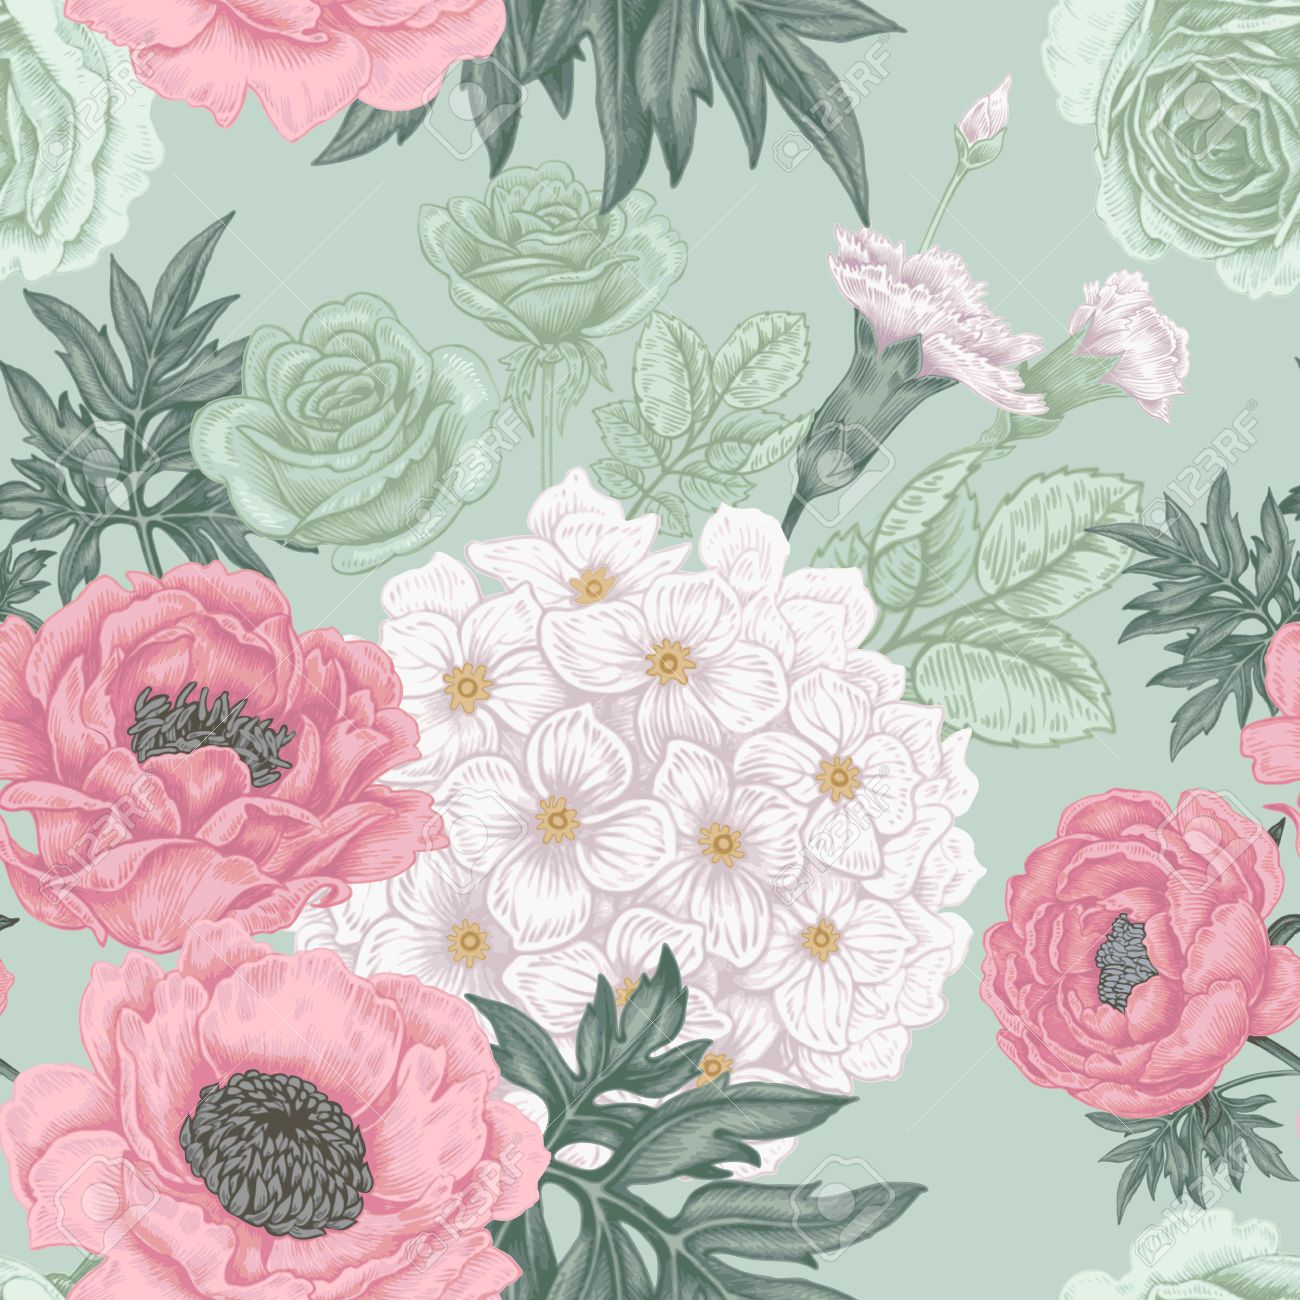 Seamless Pattern Illustration Of Garden Flowers Of Roses Peonies